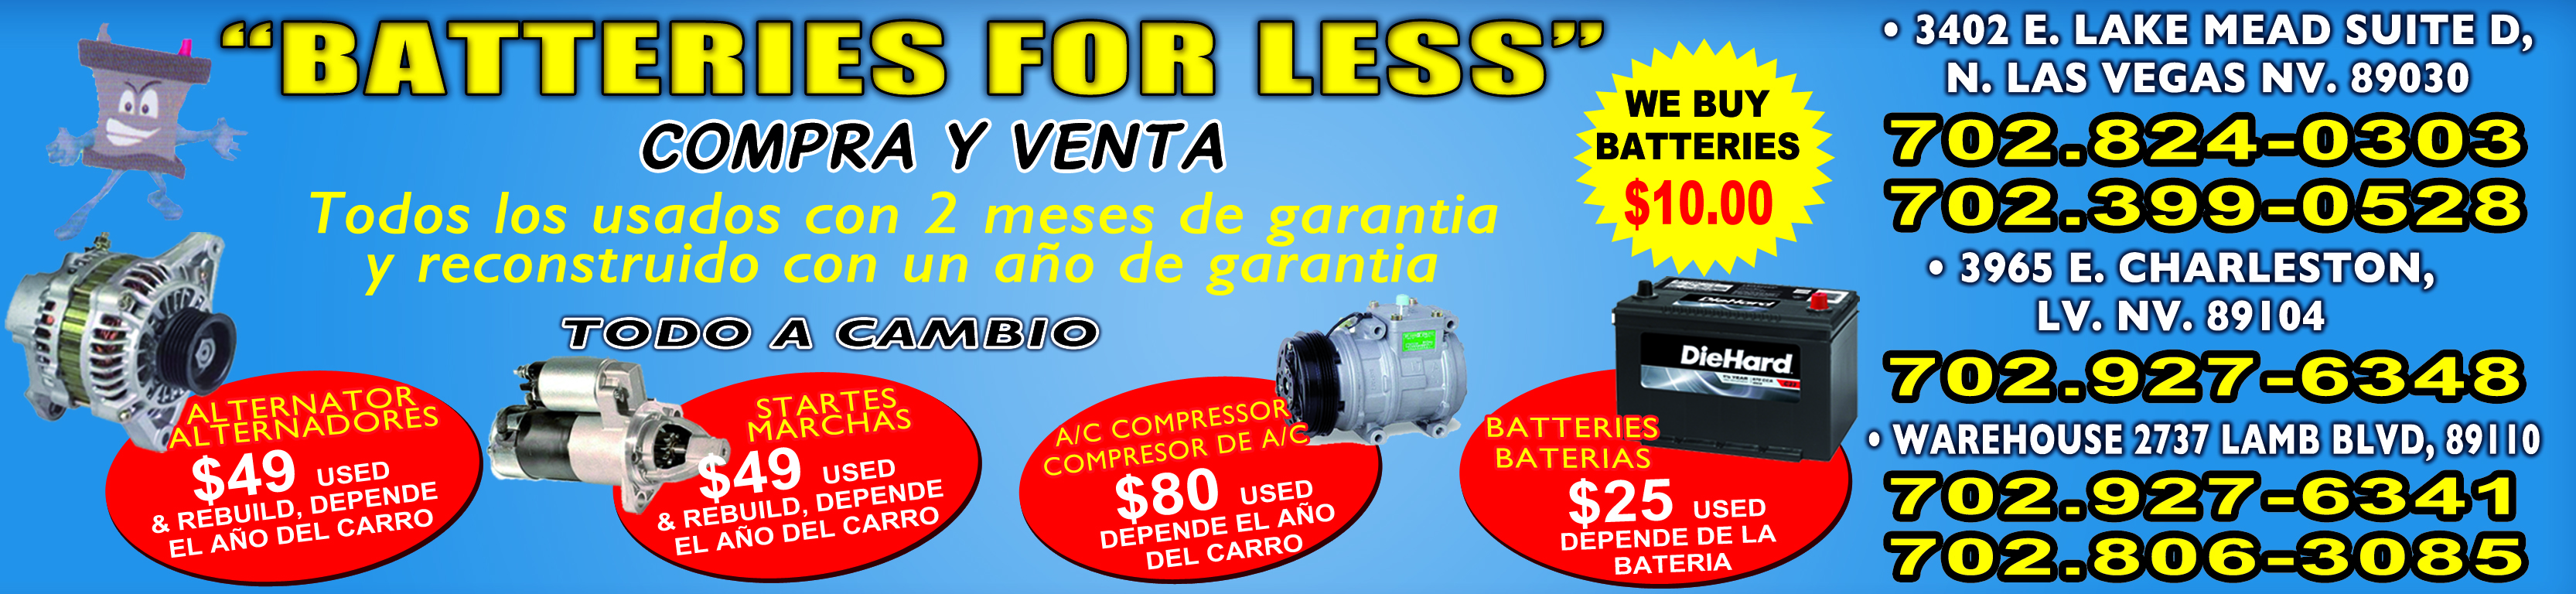 http://www.solo-ofertas-usa.com/wp-content/uploads/2016/01/batteries-For-Less-CALENDARIOS.jpg